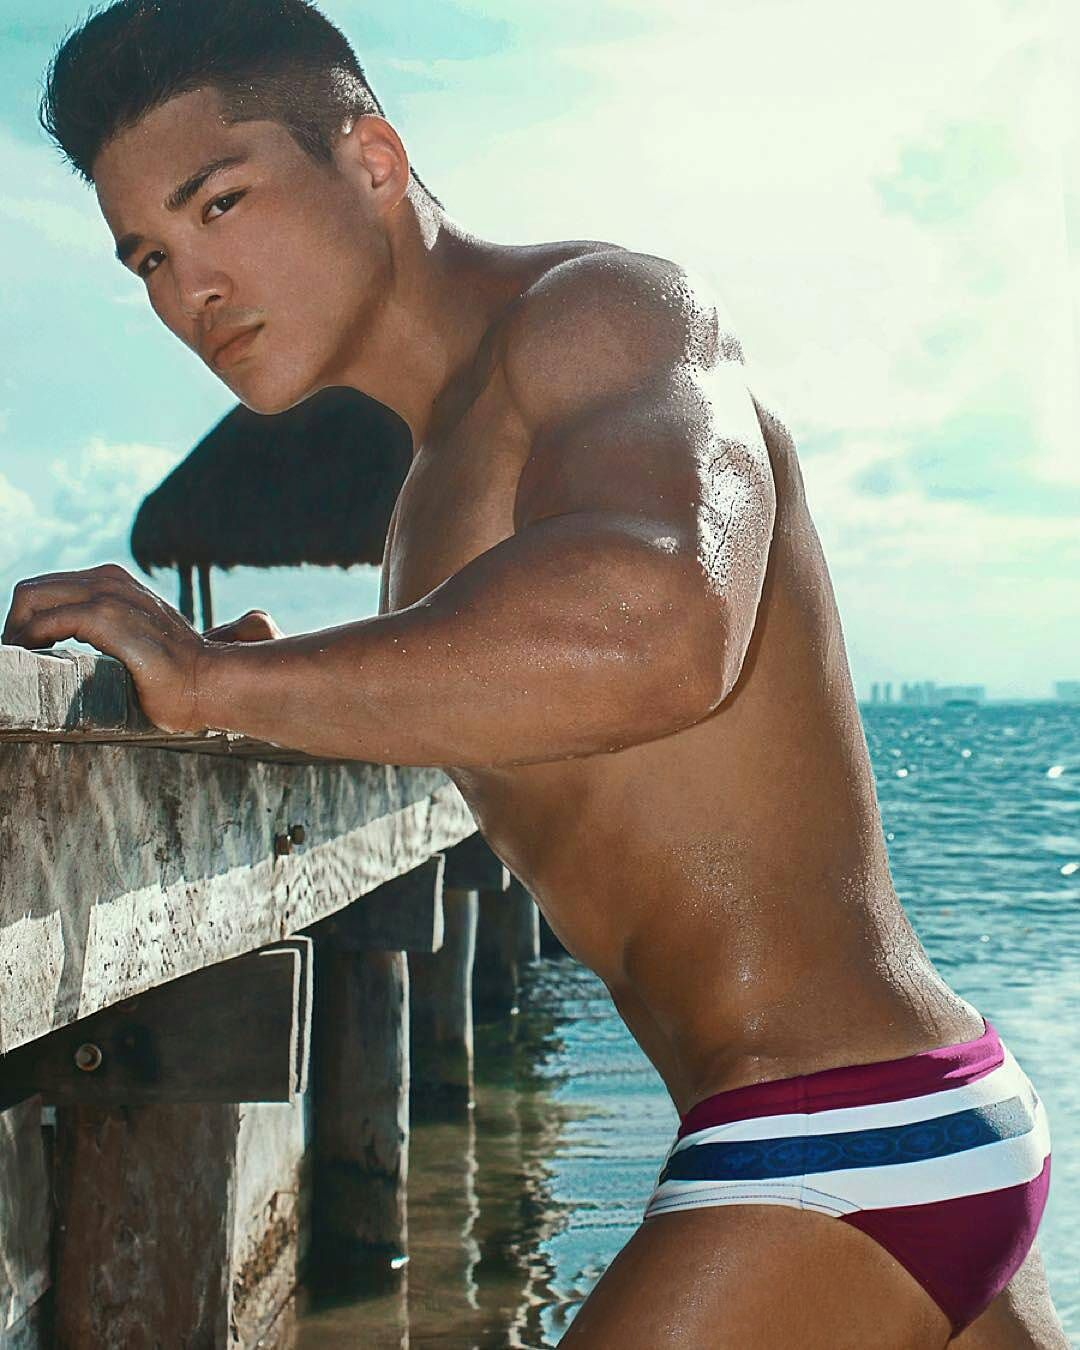 Super hot asian man